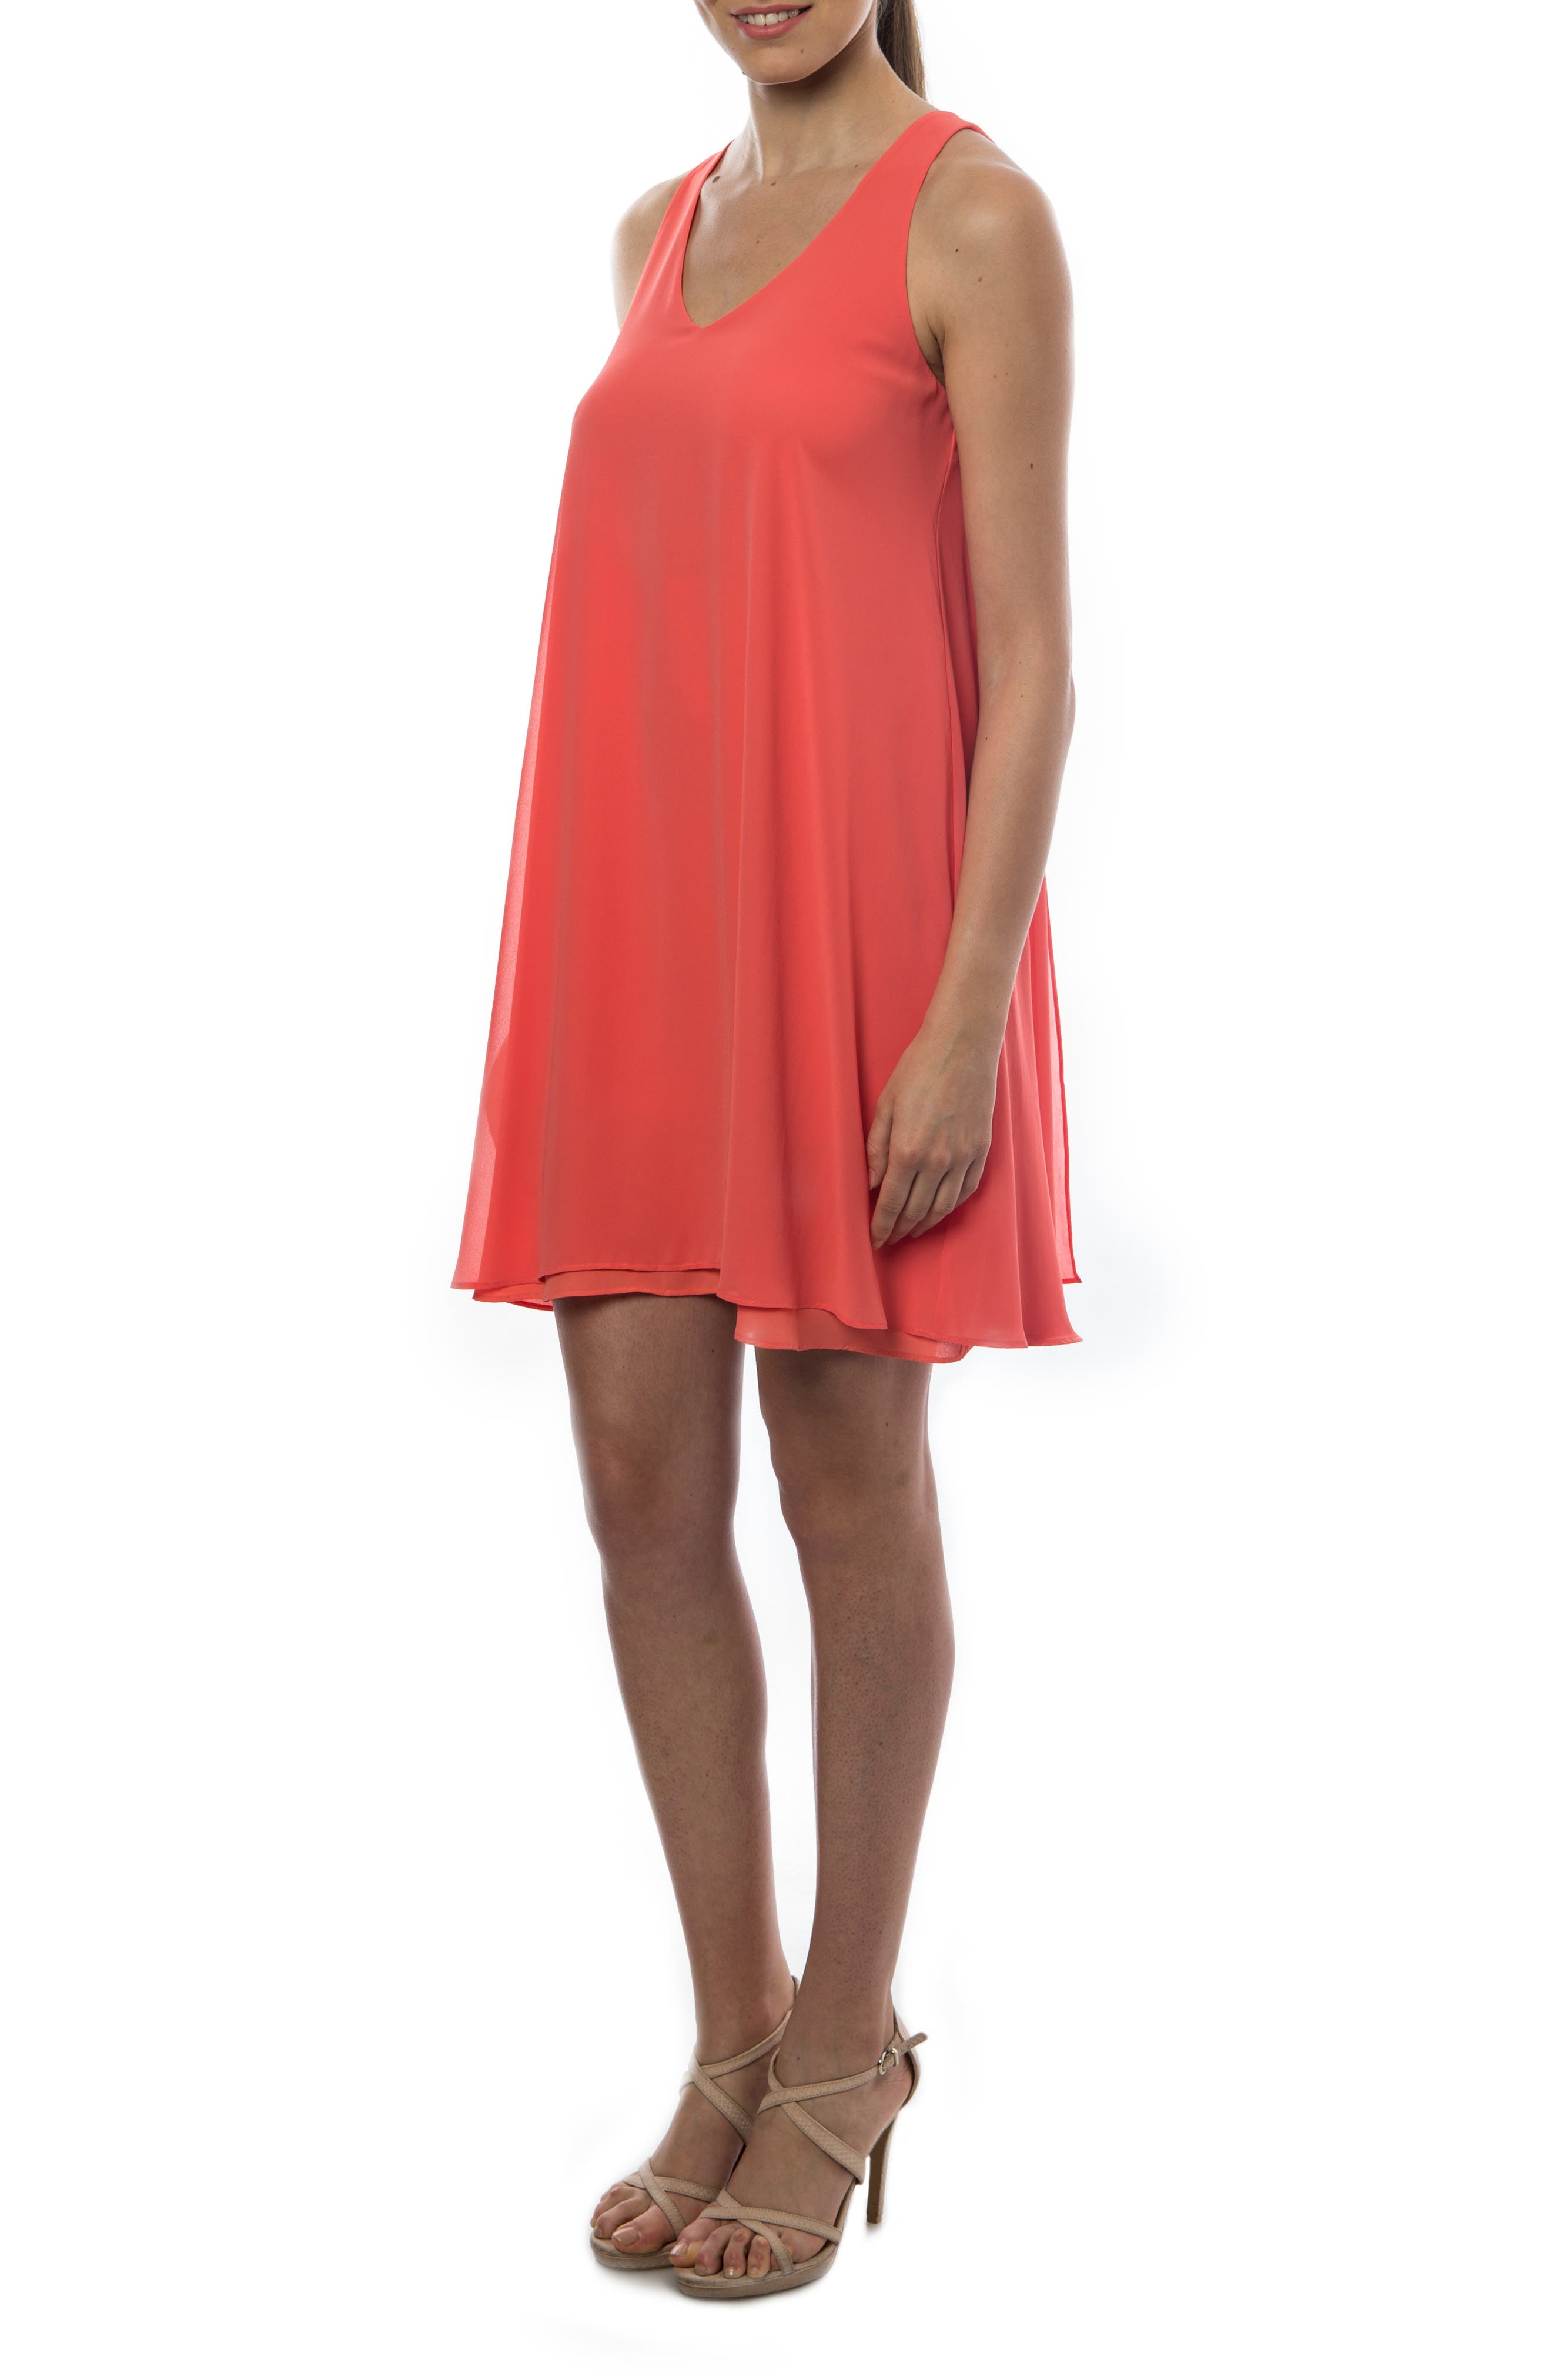 PIETRO BRUNELLI 'Lago Di Como' High/Low Maternity Dress, Main, color, ANEMONE/ CORAL